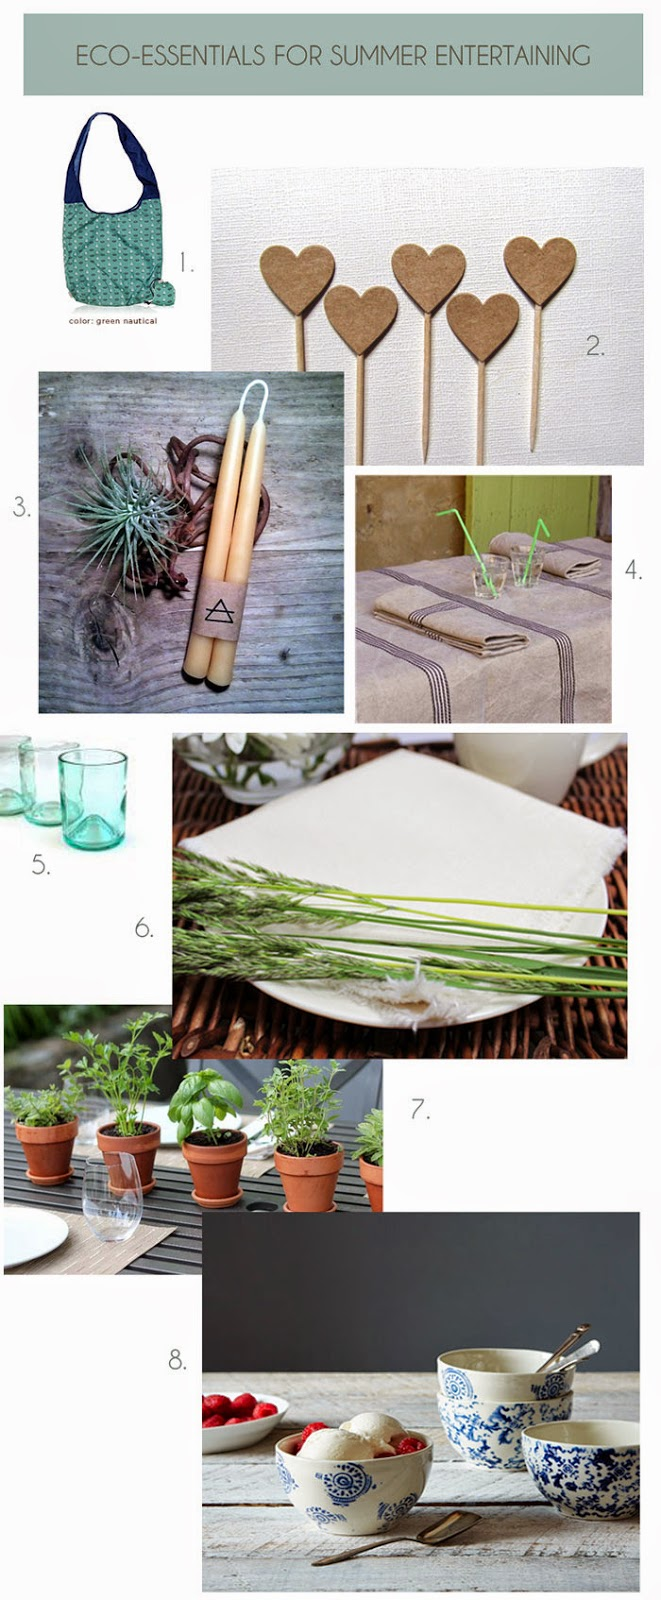 eco-friendly-summer-entertaining-products.jpg